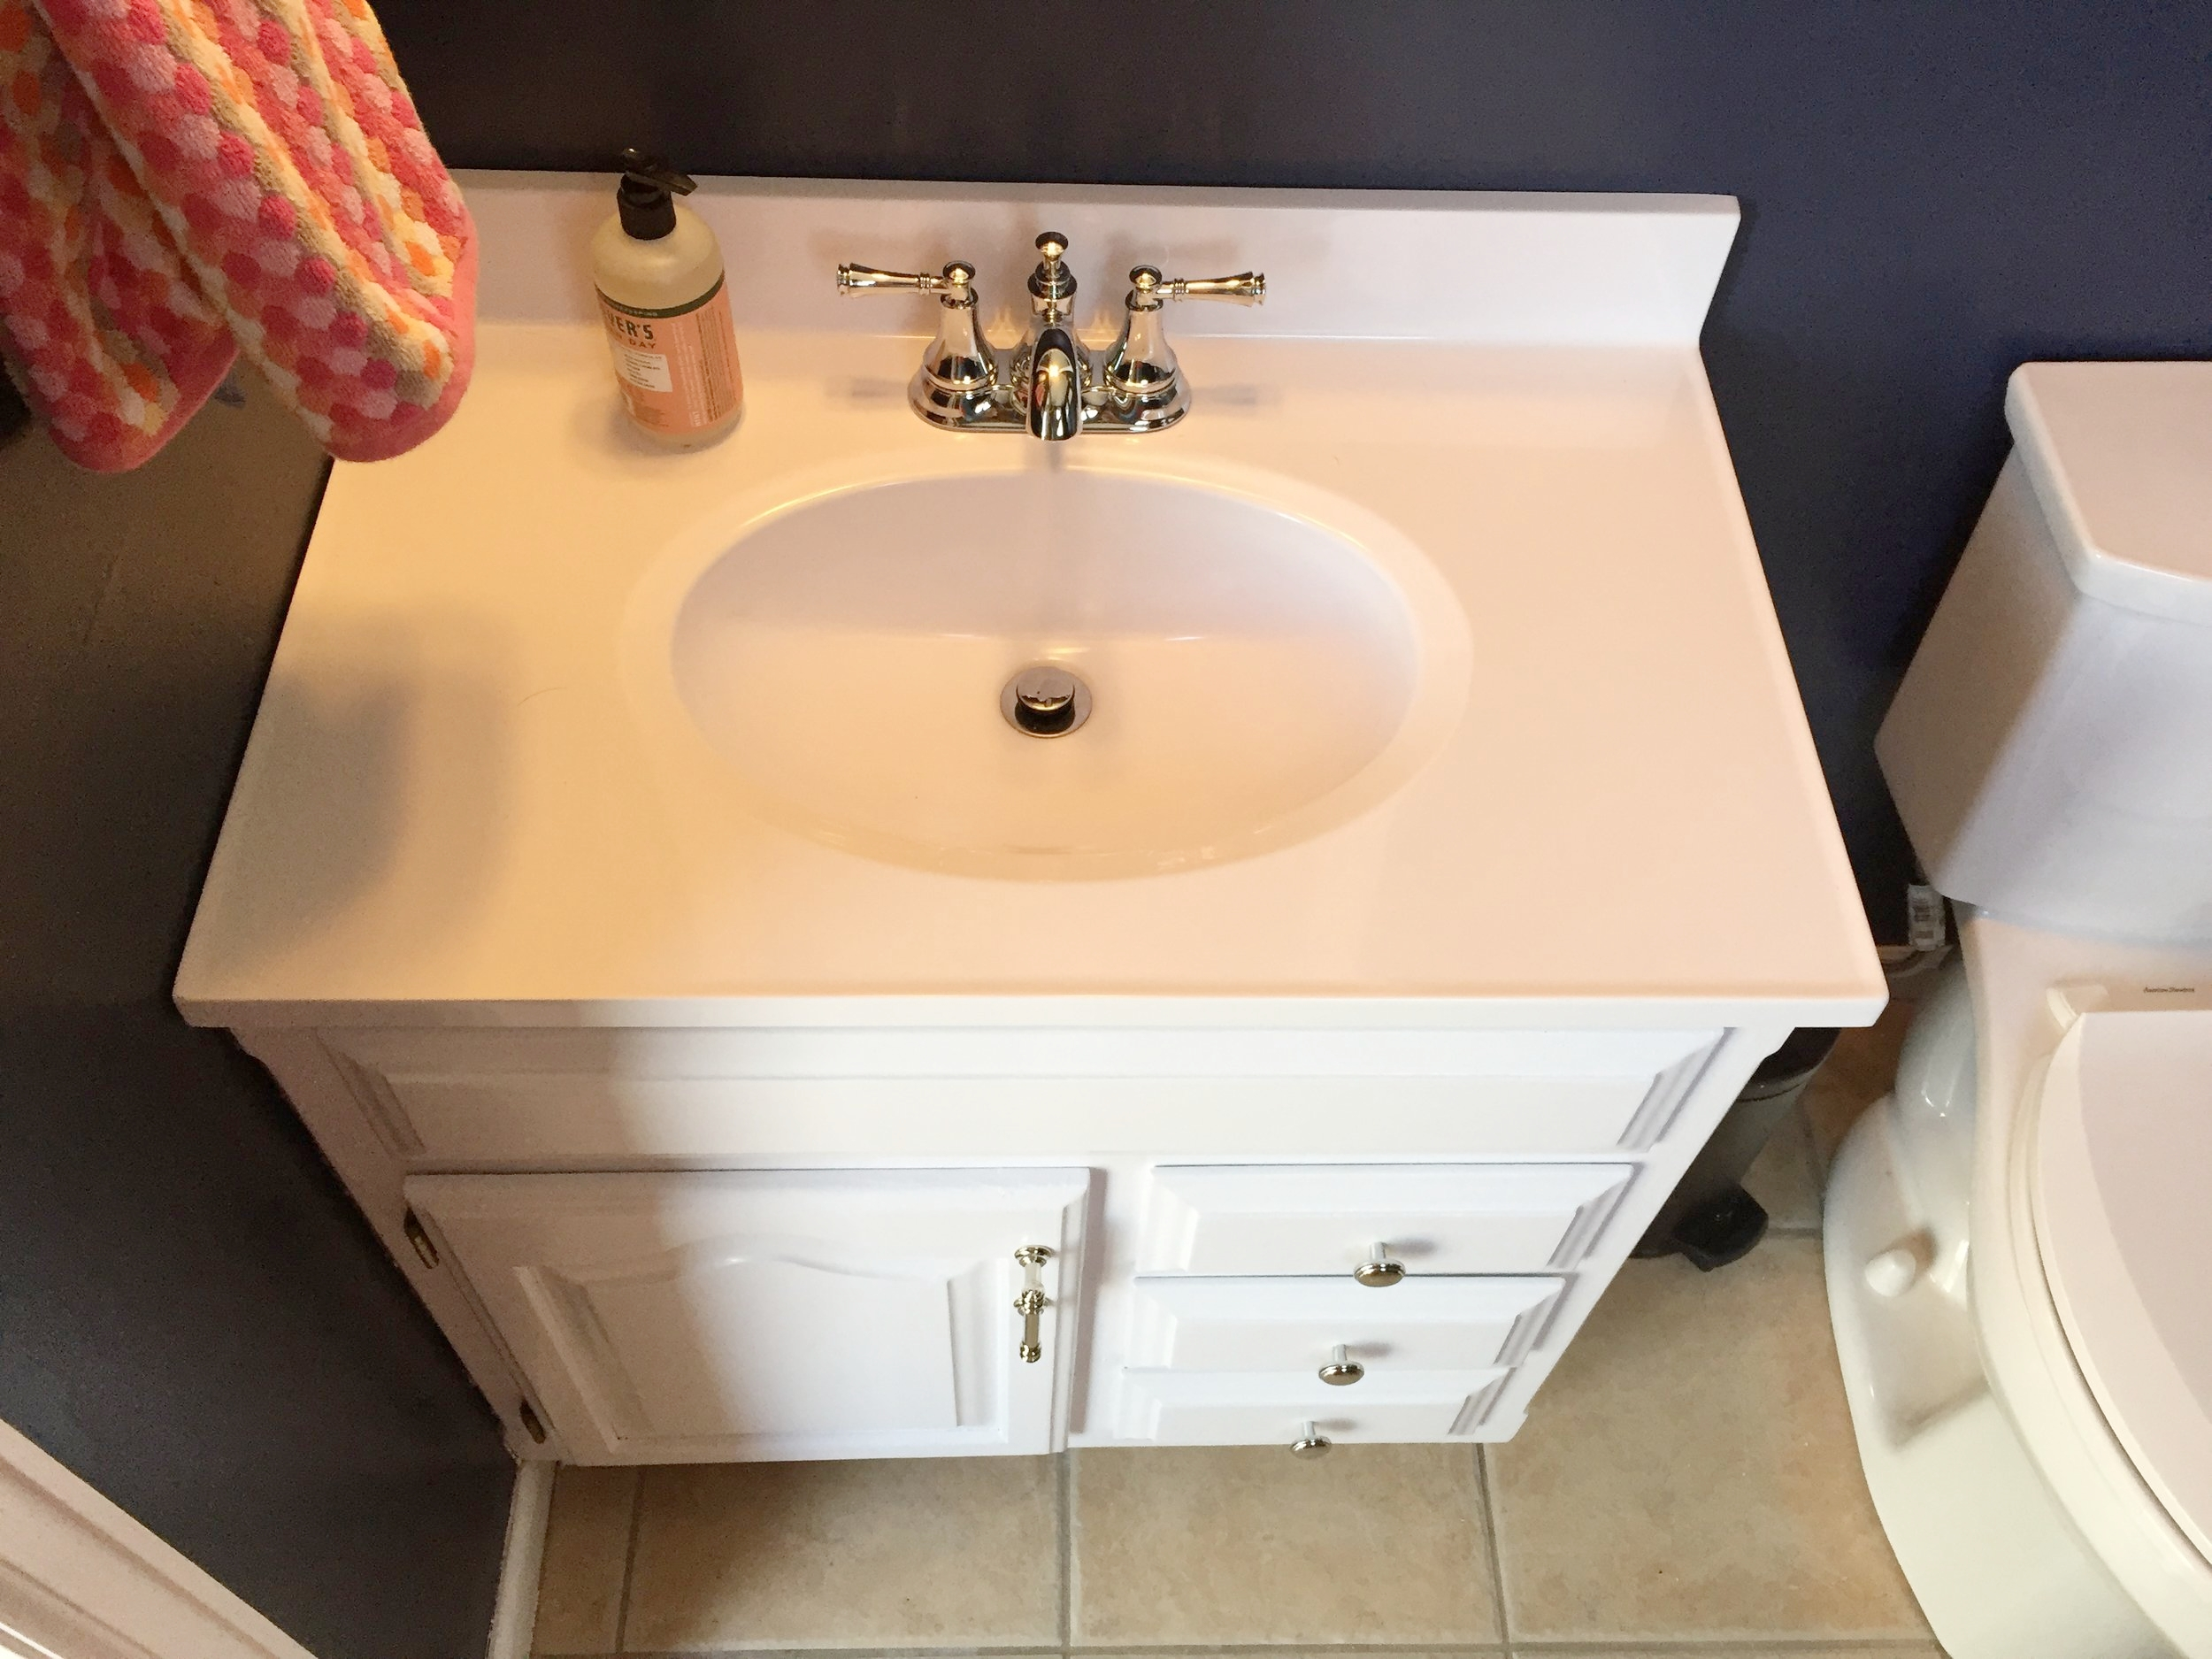 New white vanity top modernizes this space.